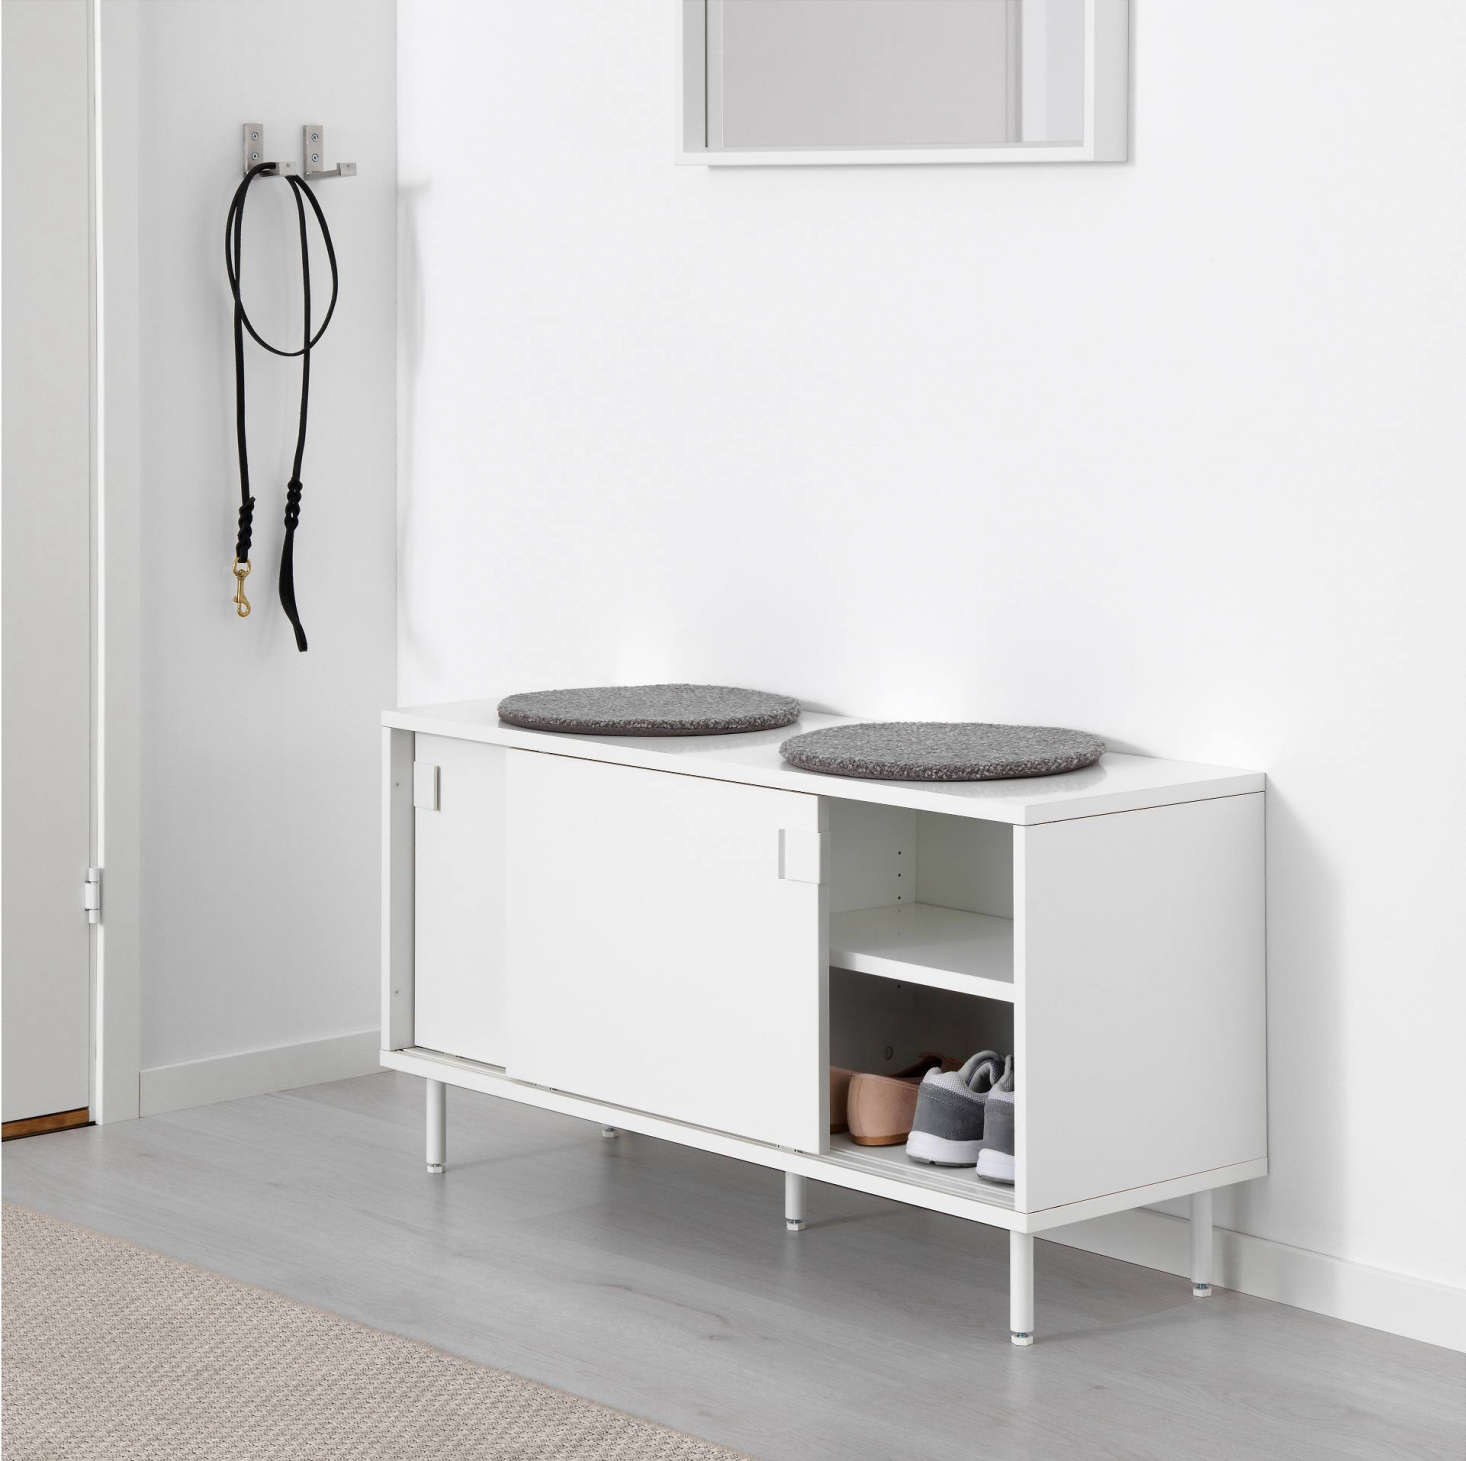 The Mackapär Bench With Storage Compartments Is A Bench With Sliding Doors  For Concealing Shoes And